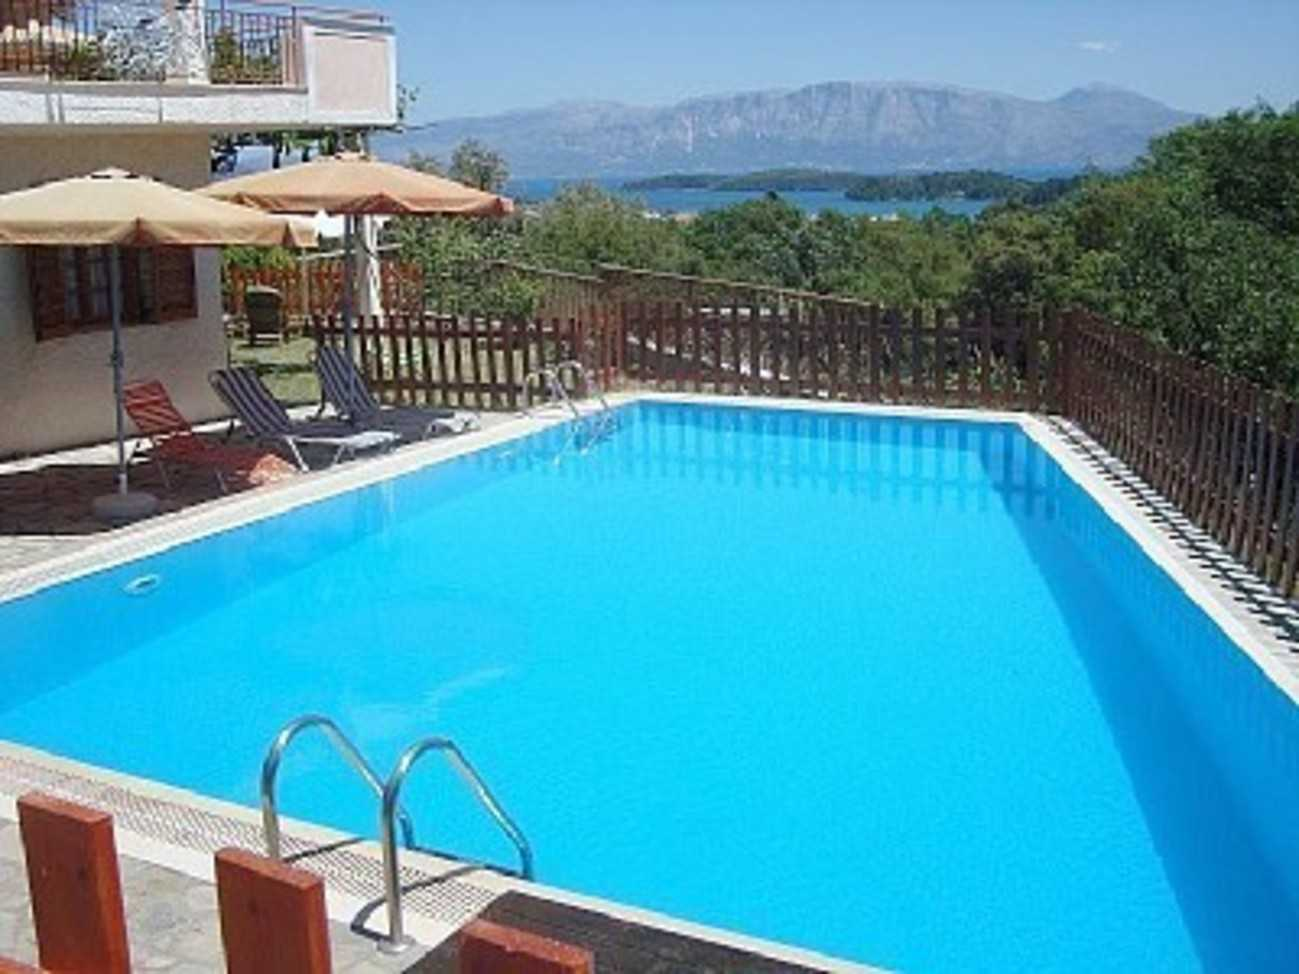 Villa s groundfloorapartment with 60 qm private swimming pool around for California private swimming pool code